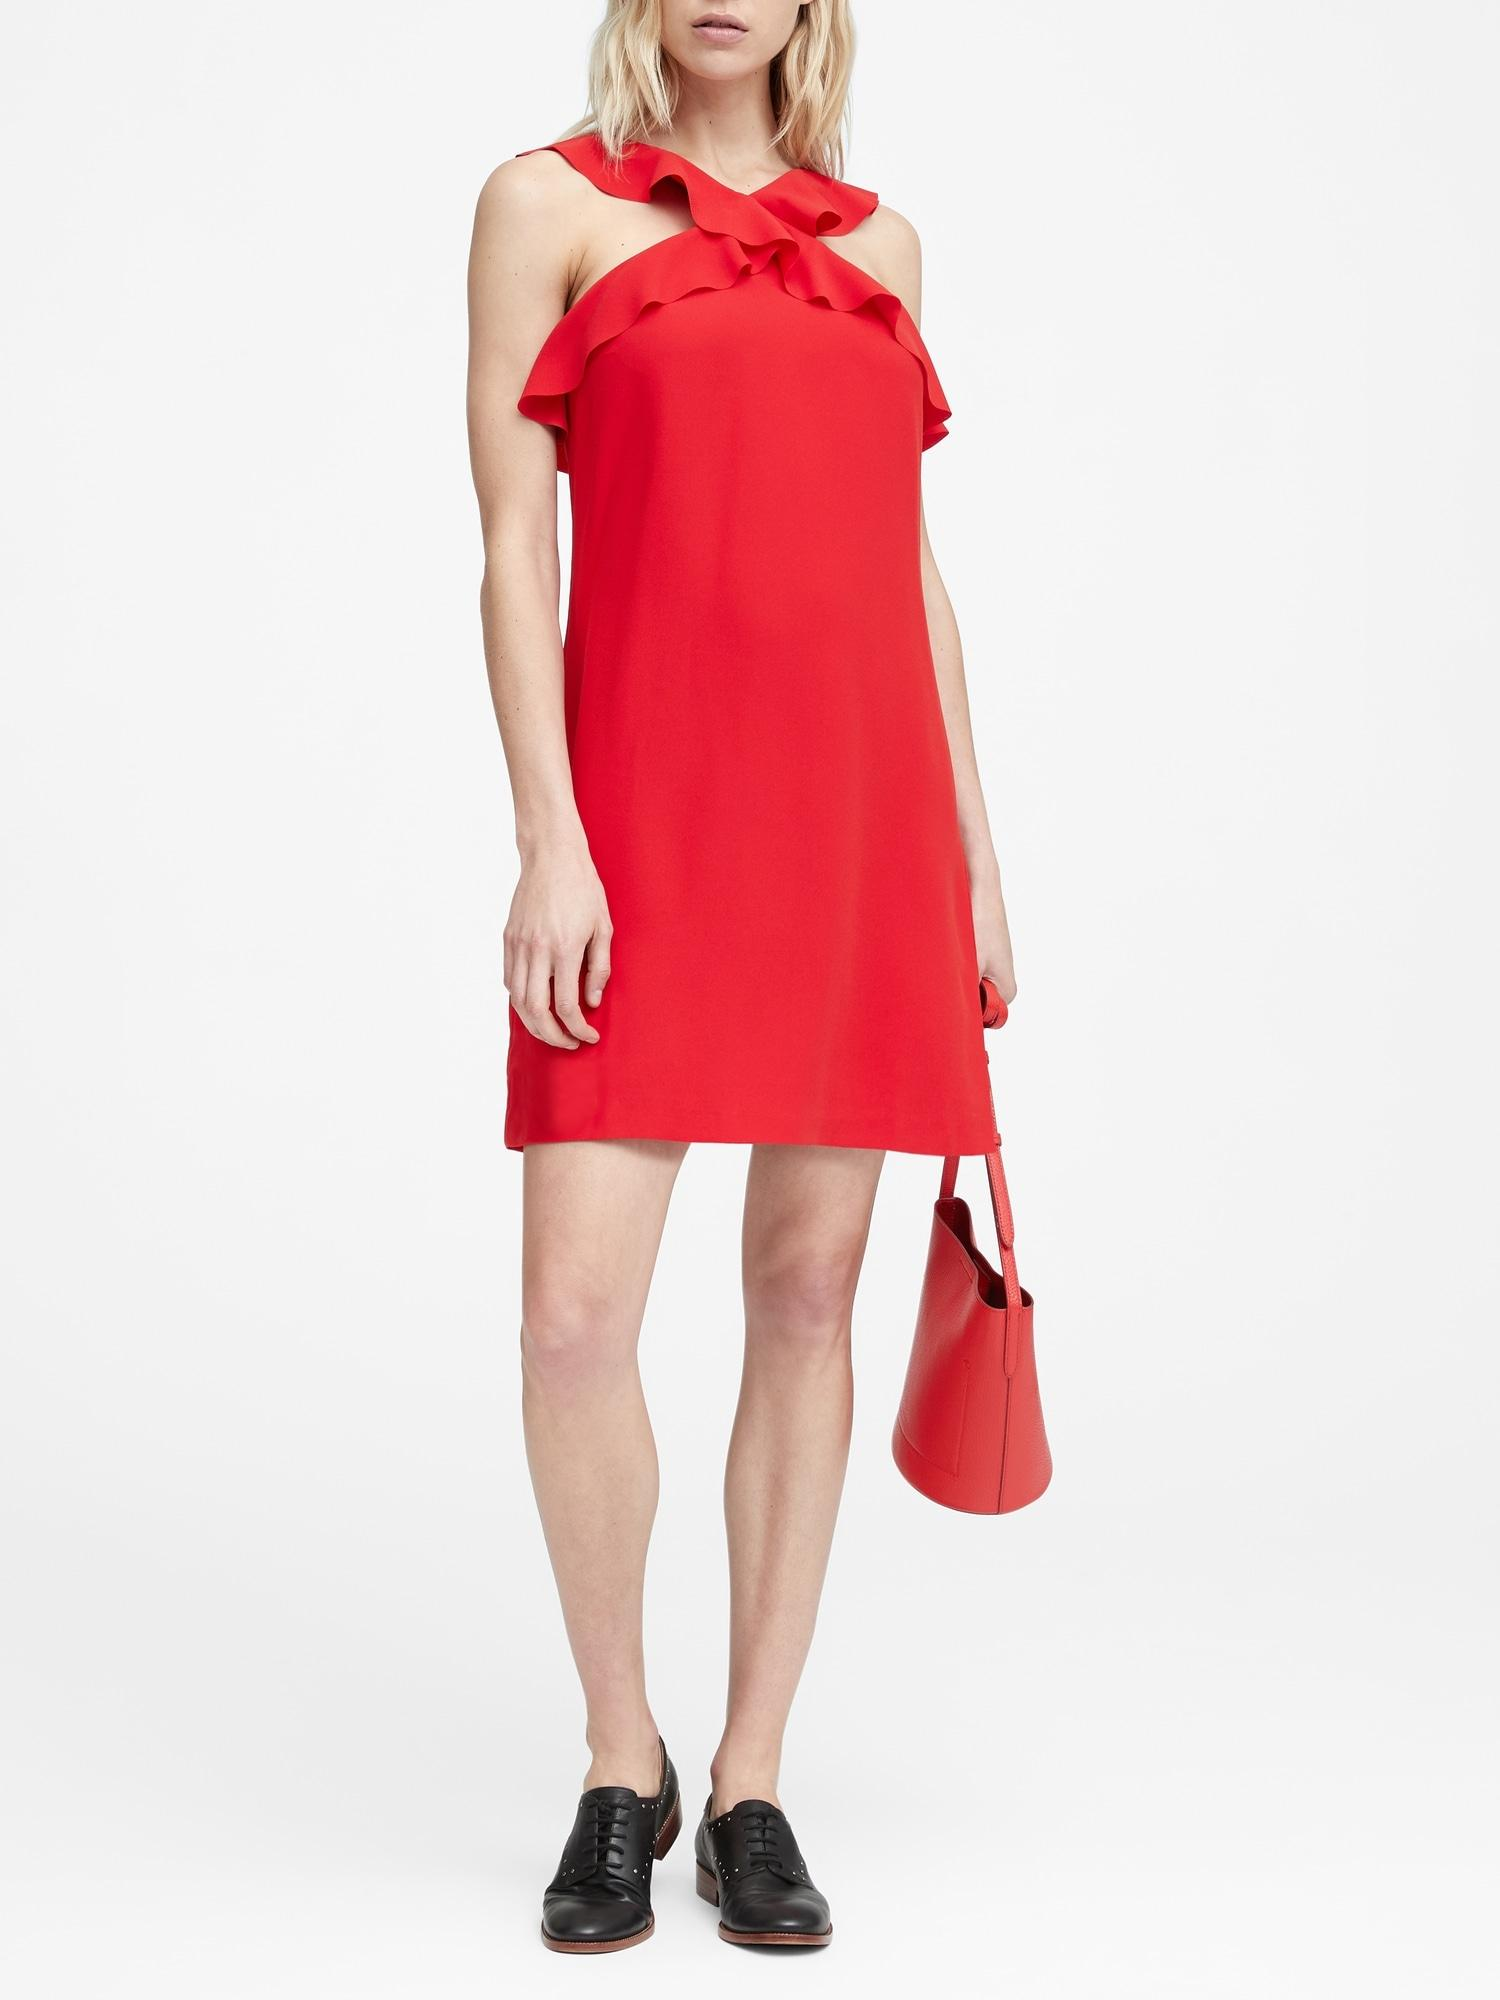 01a630e2de Lyst - Banana Republic Ruffle Halter Dress in Red